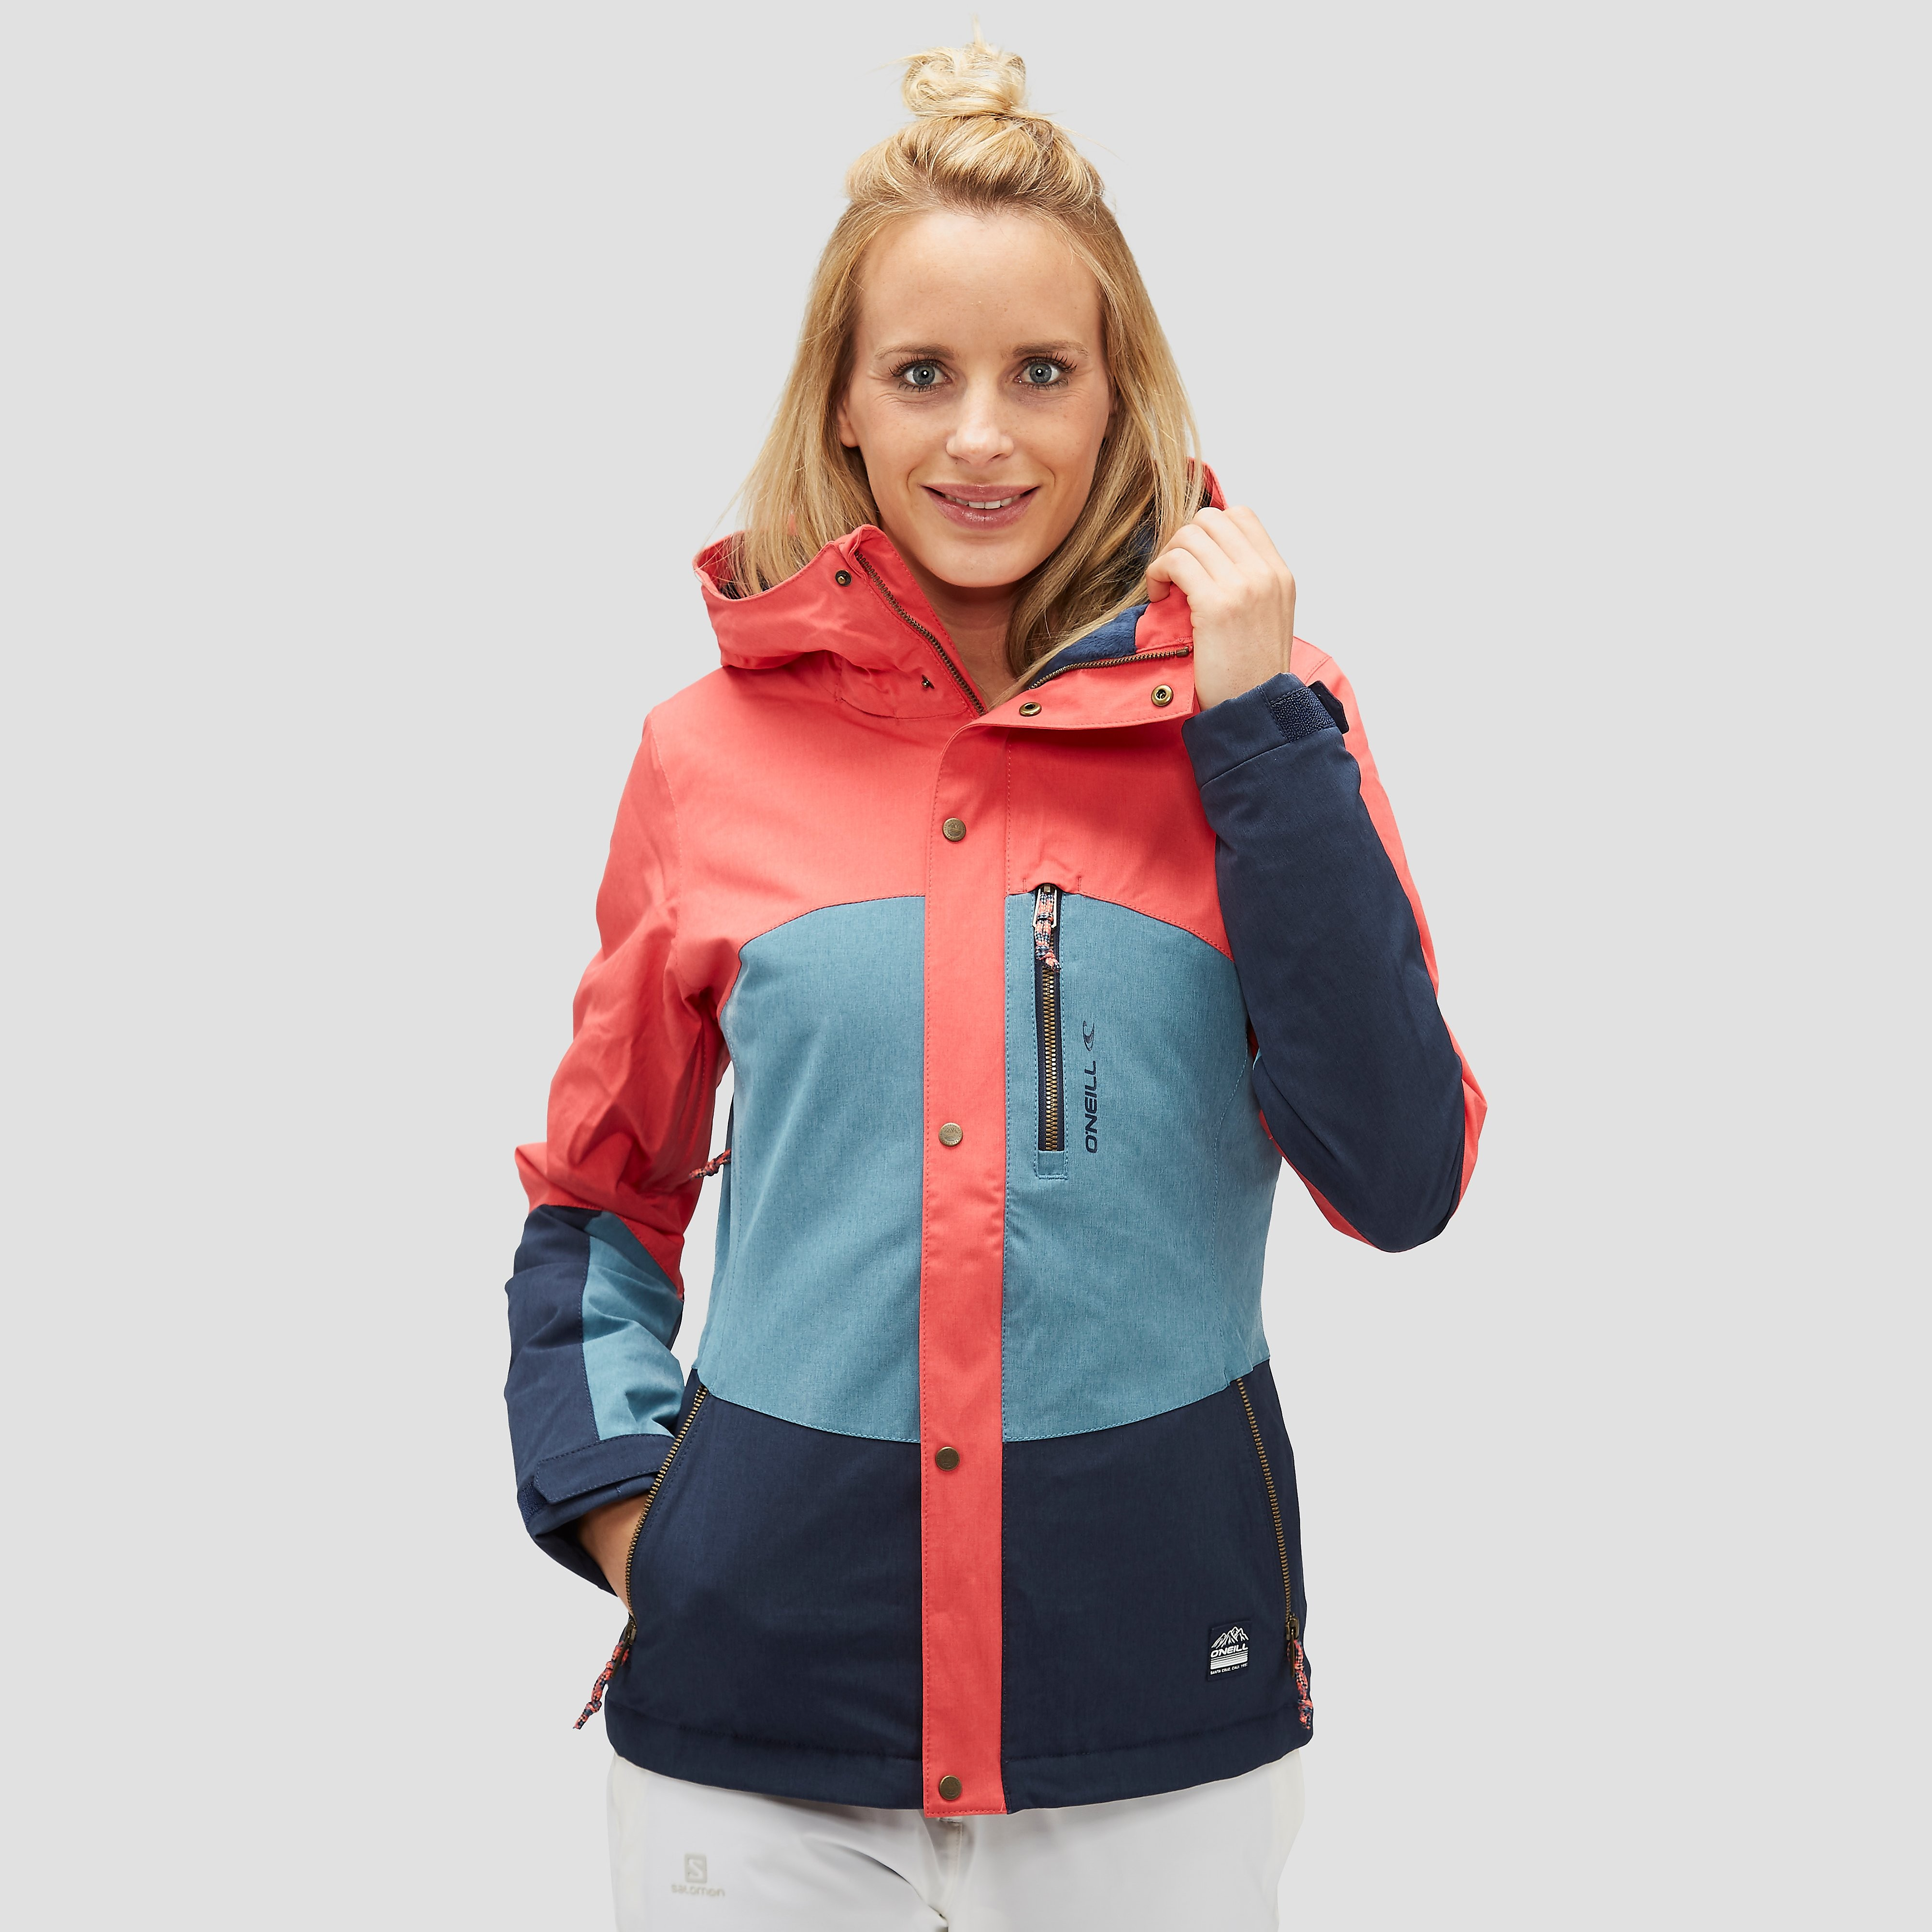 O'NEILL CORAL OUTDOOR JAS BLAUW DAMES